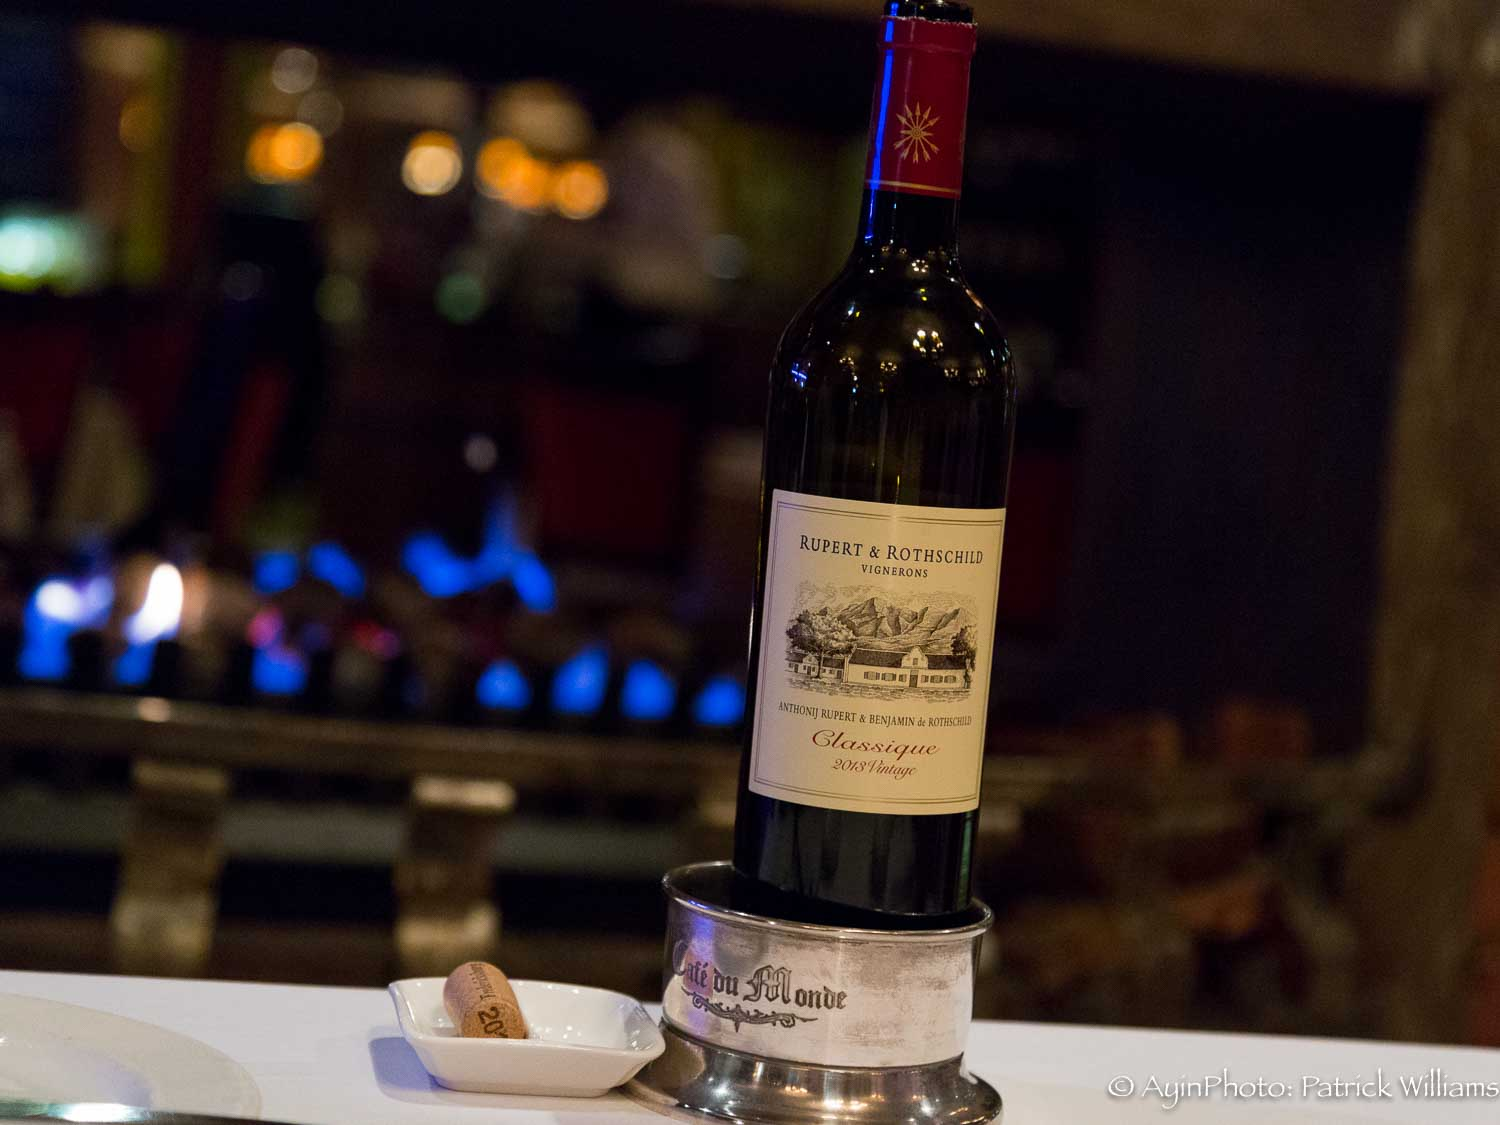 South Africa - Red Wine at Fireplace